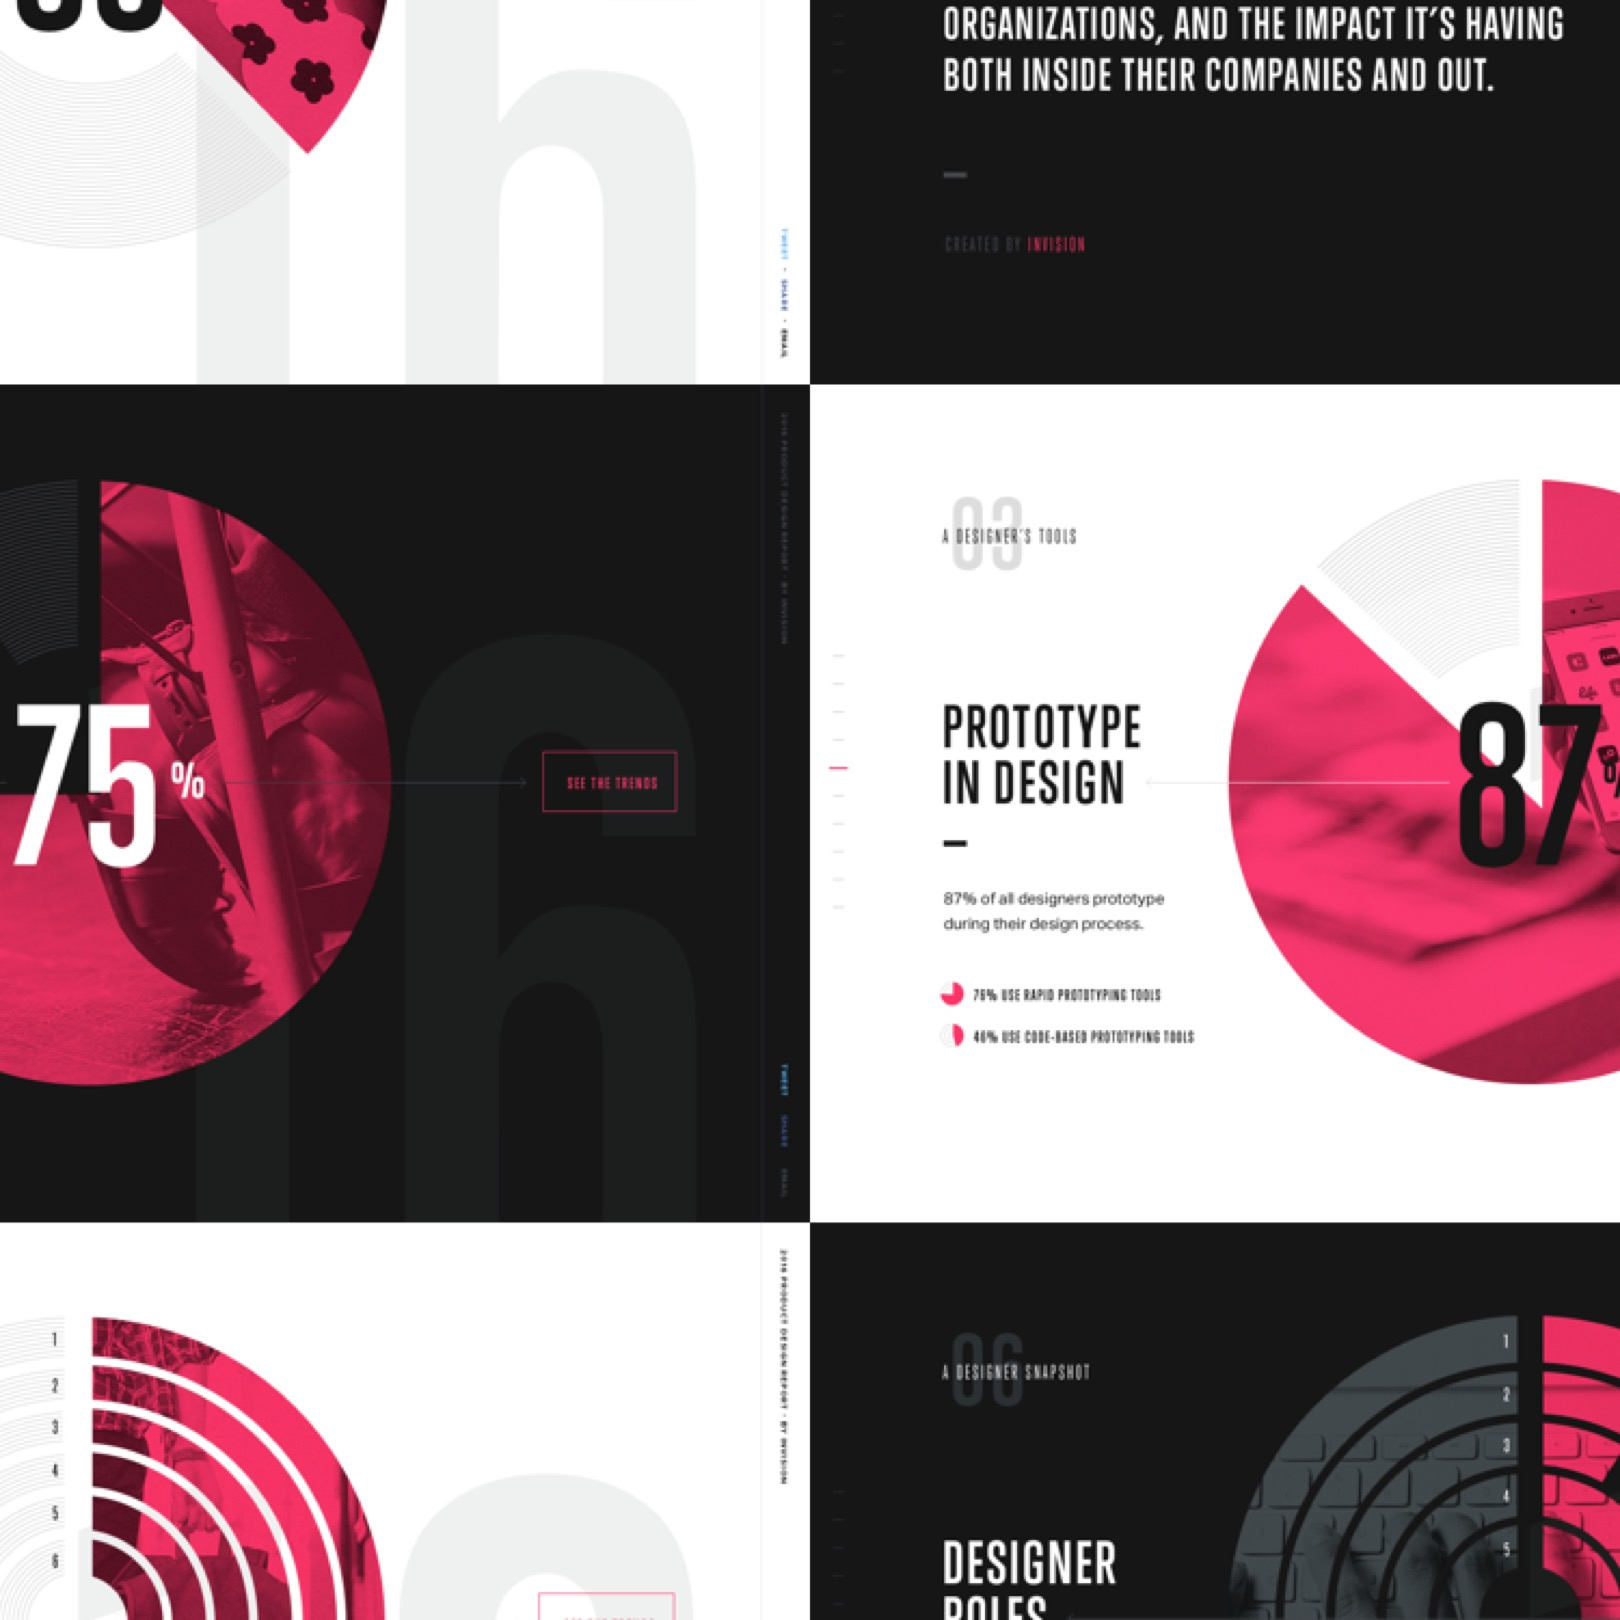 Introducing The 2016 Product Design Report Inside Design Blog